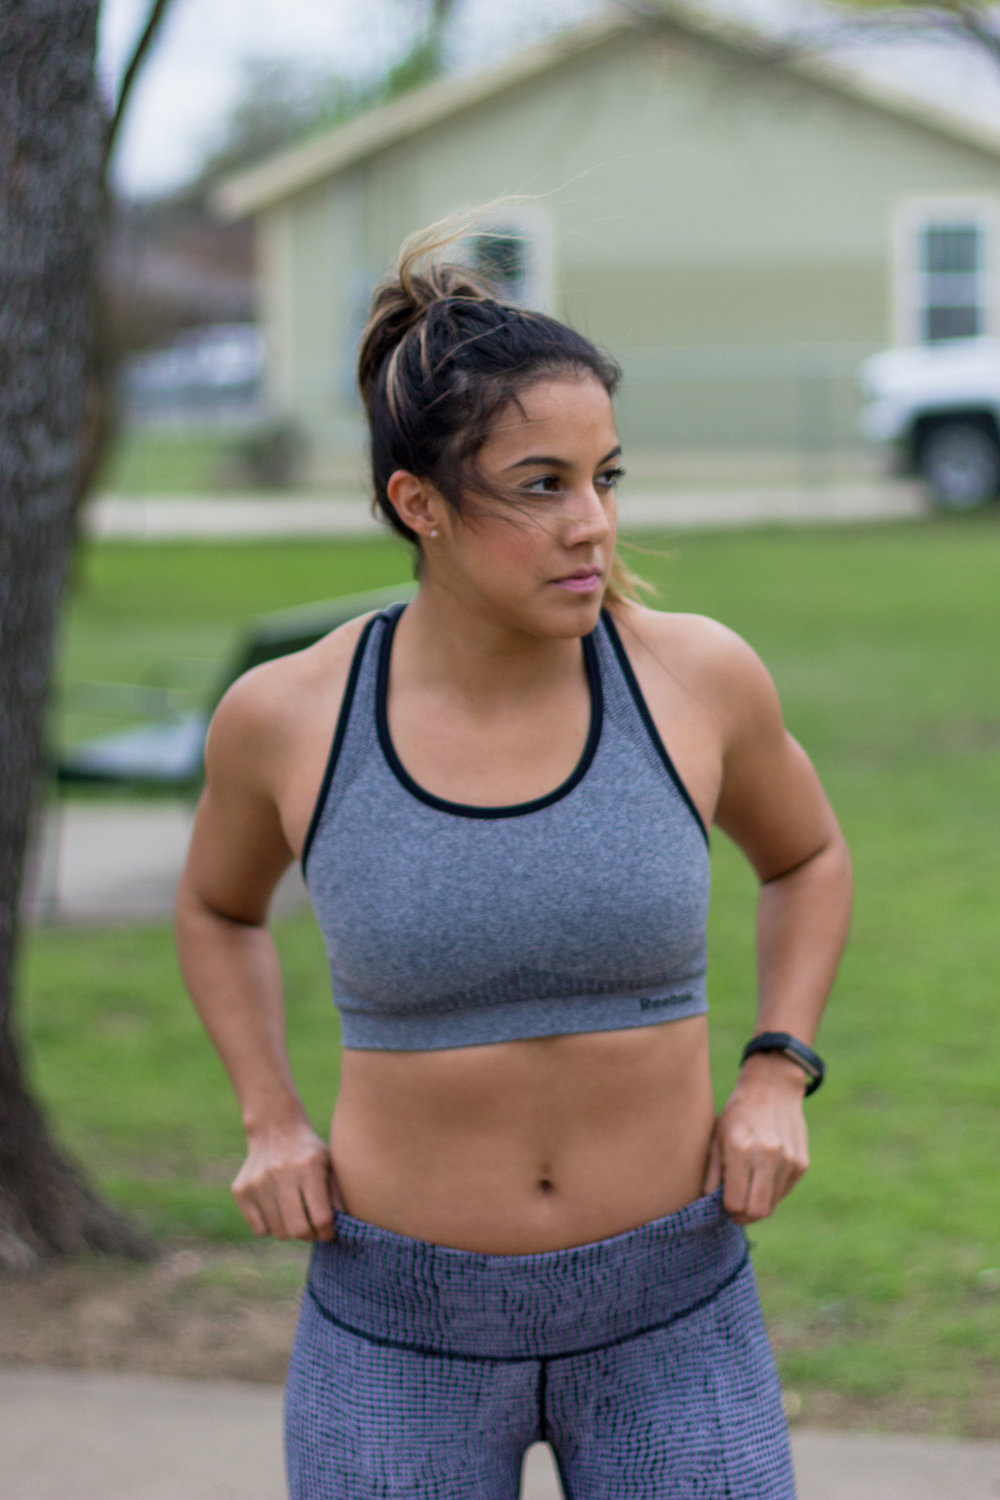 thecandidlifeofchristian_workouts3